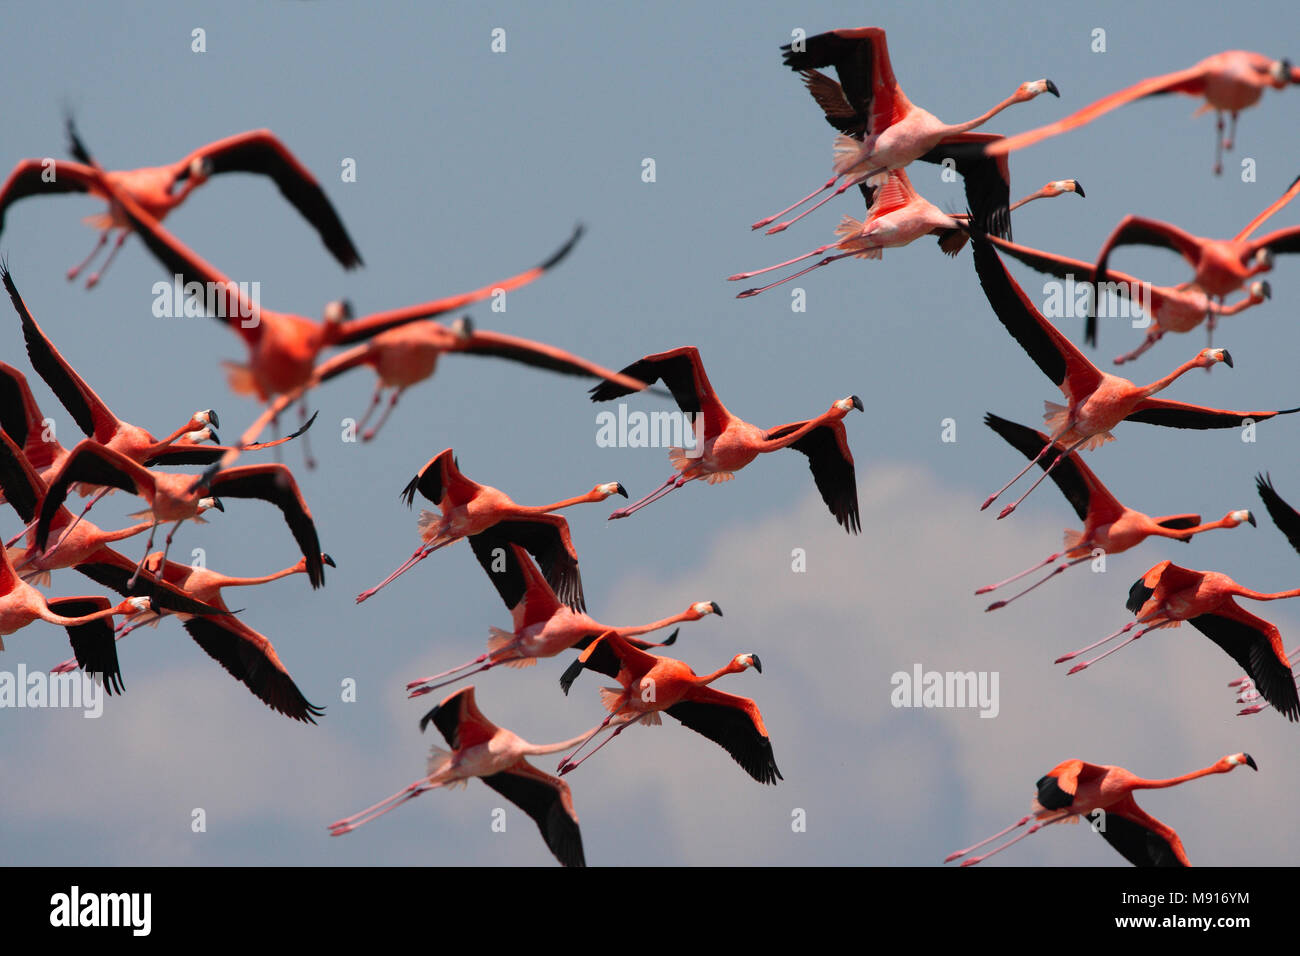 Rode Flamingo een groep in vlucht Mexico, American Flamingo a flock in flight Mexico - Stock Image